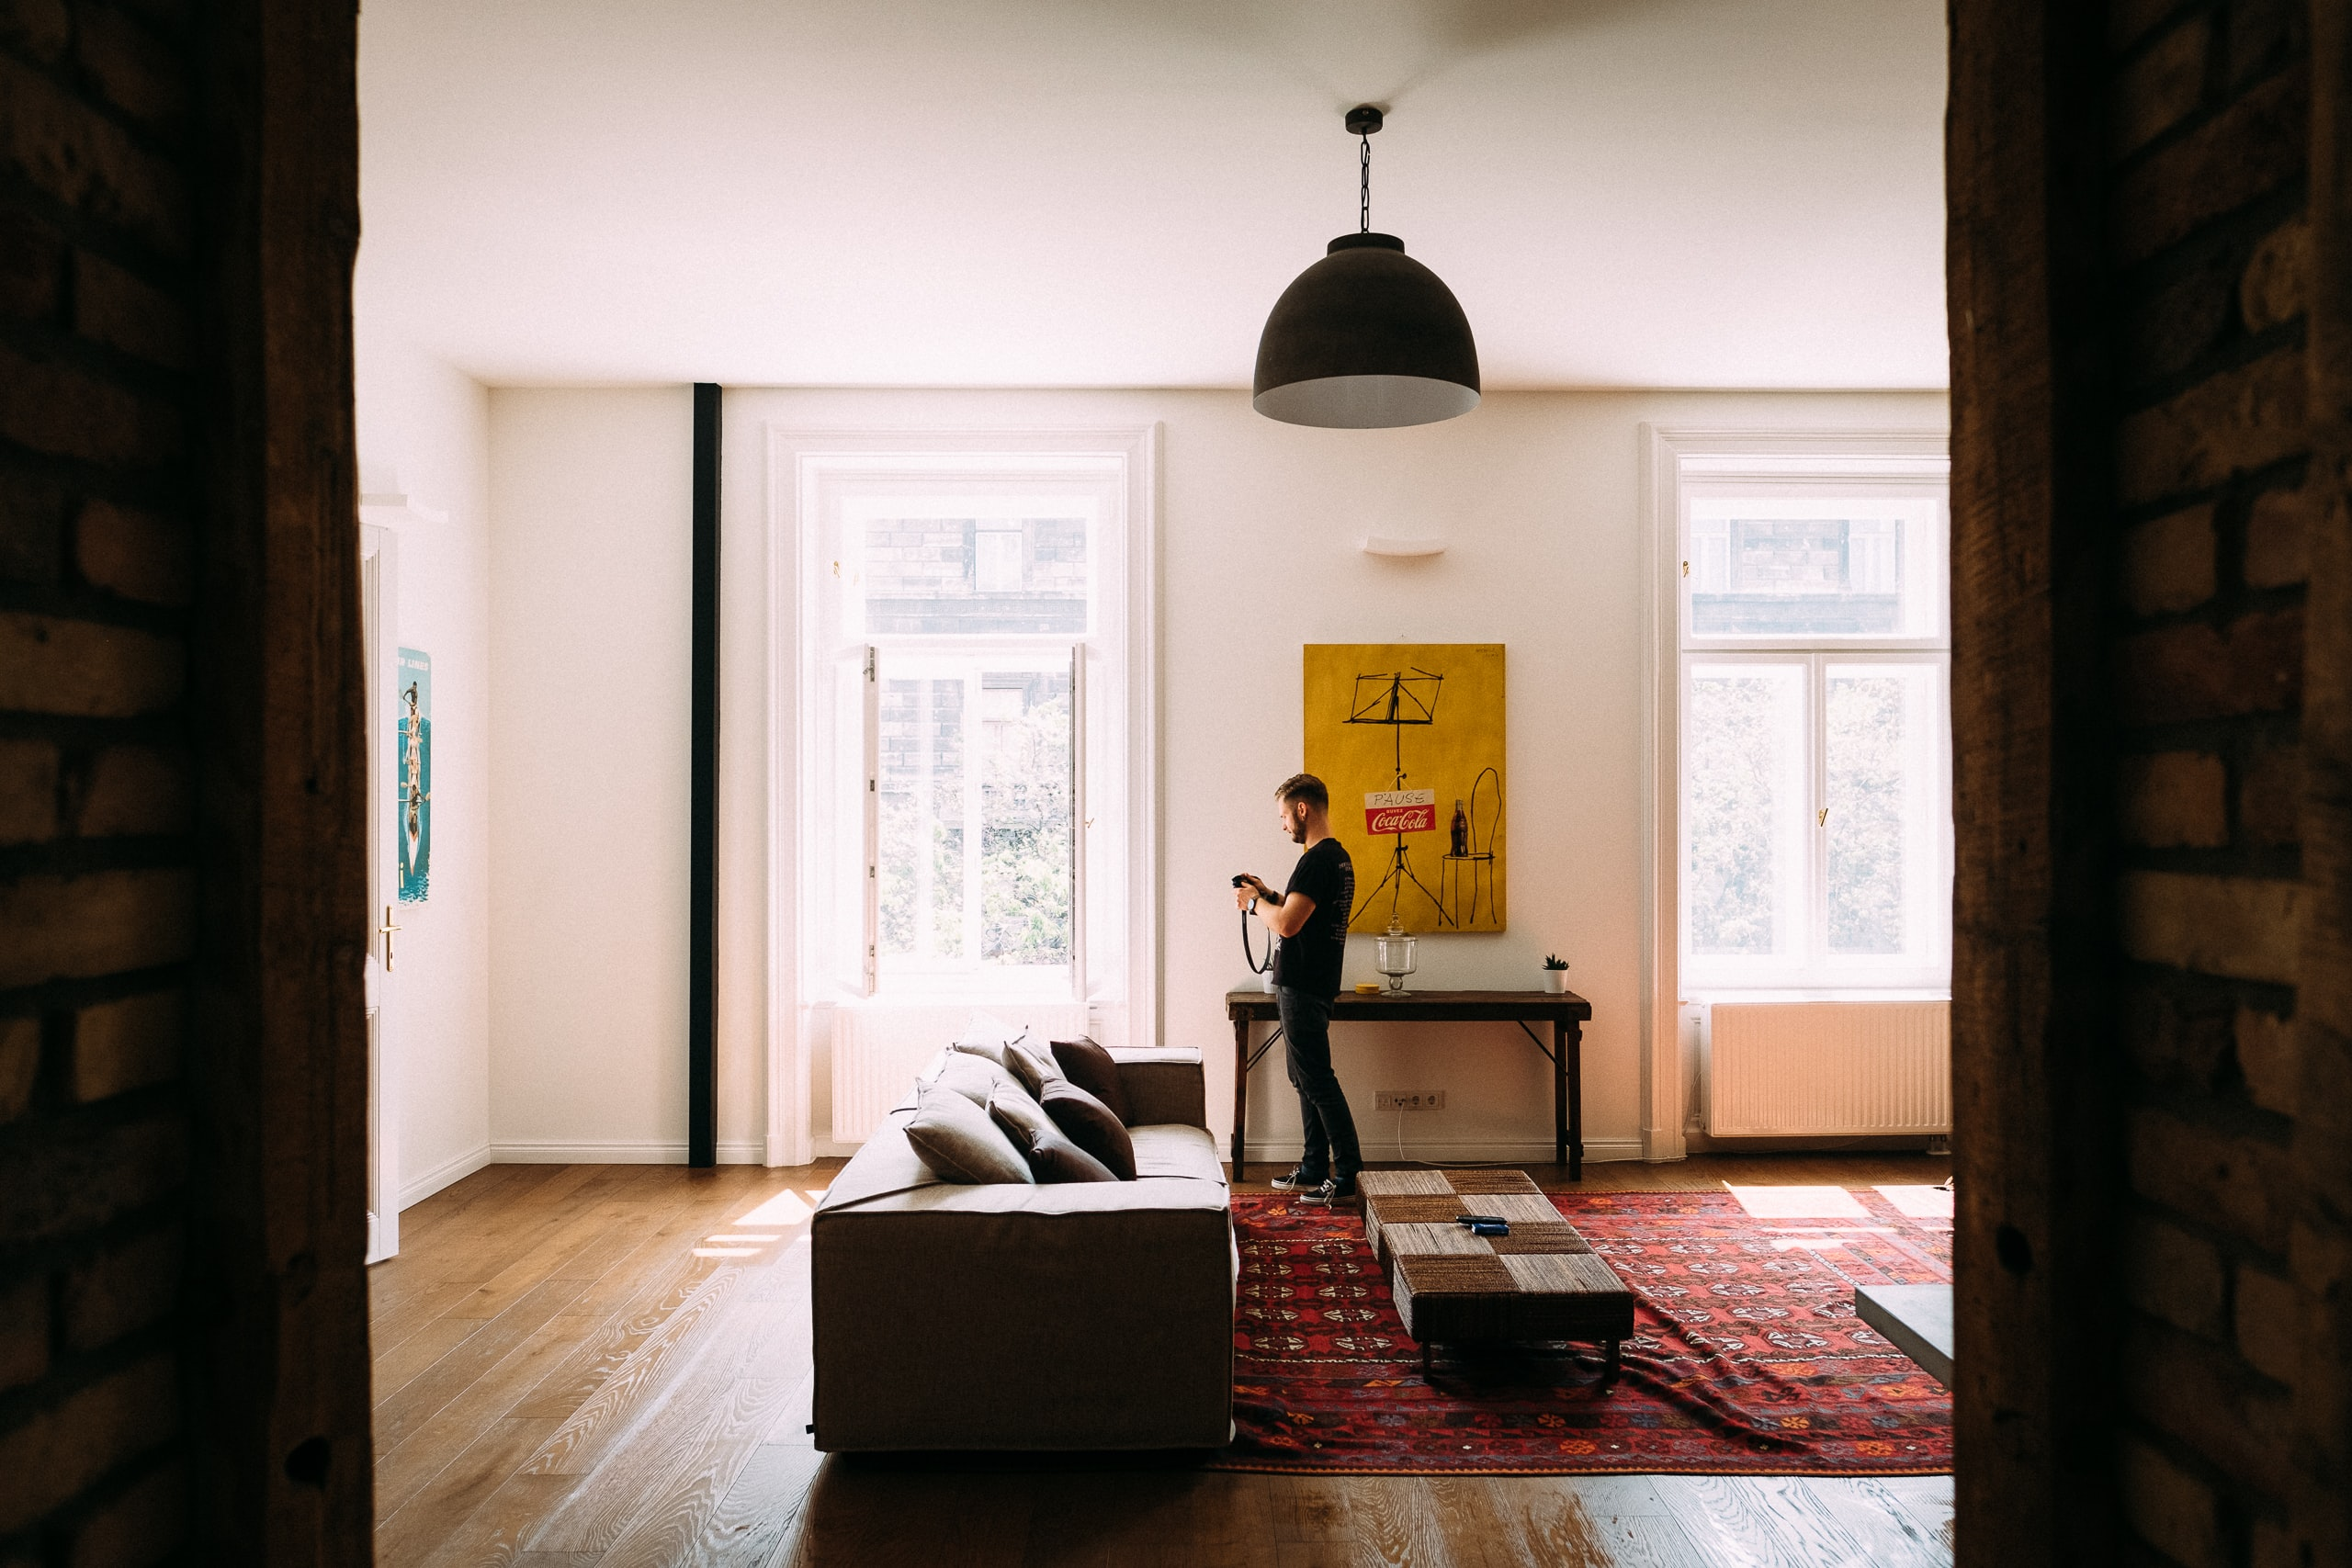 person standing near hallway table and window